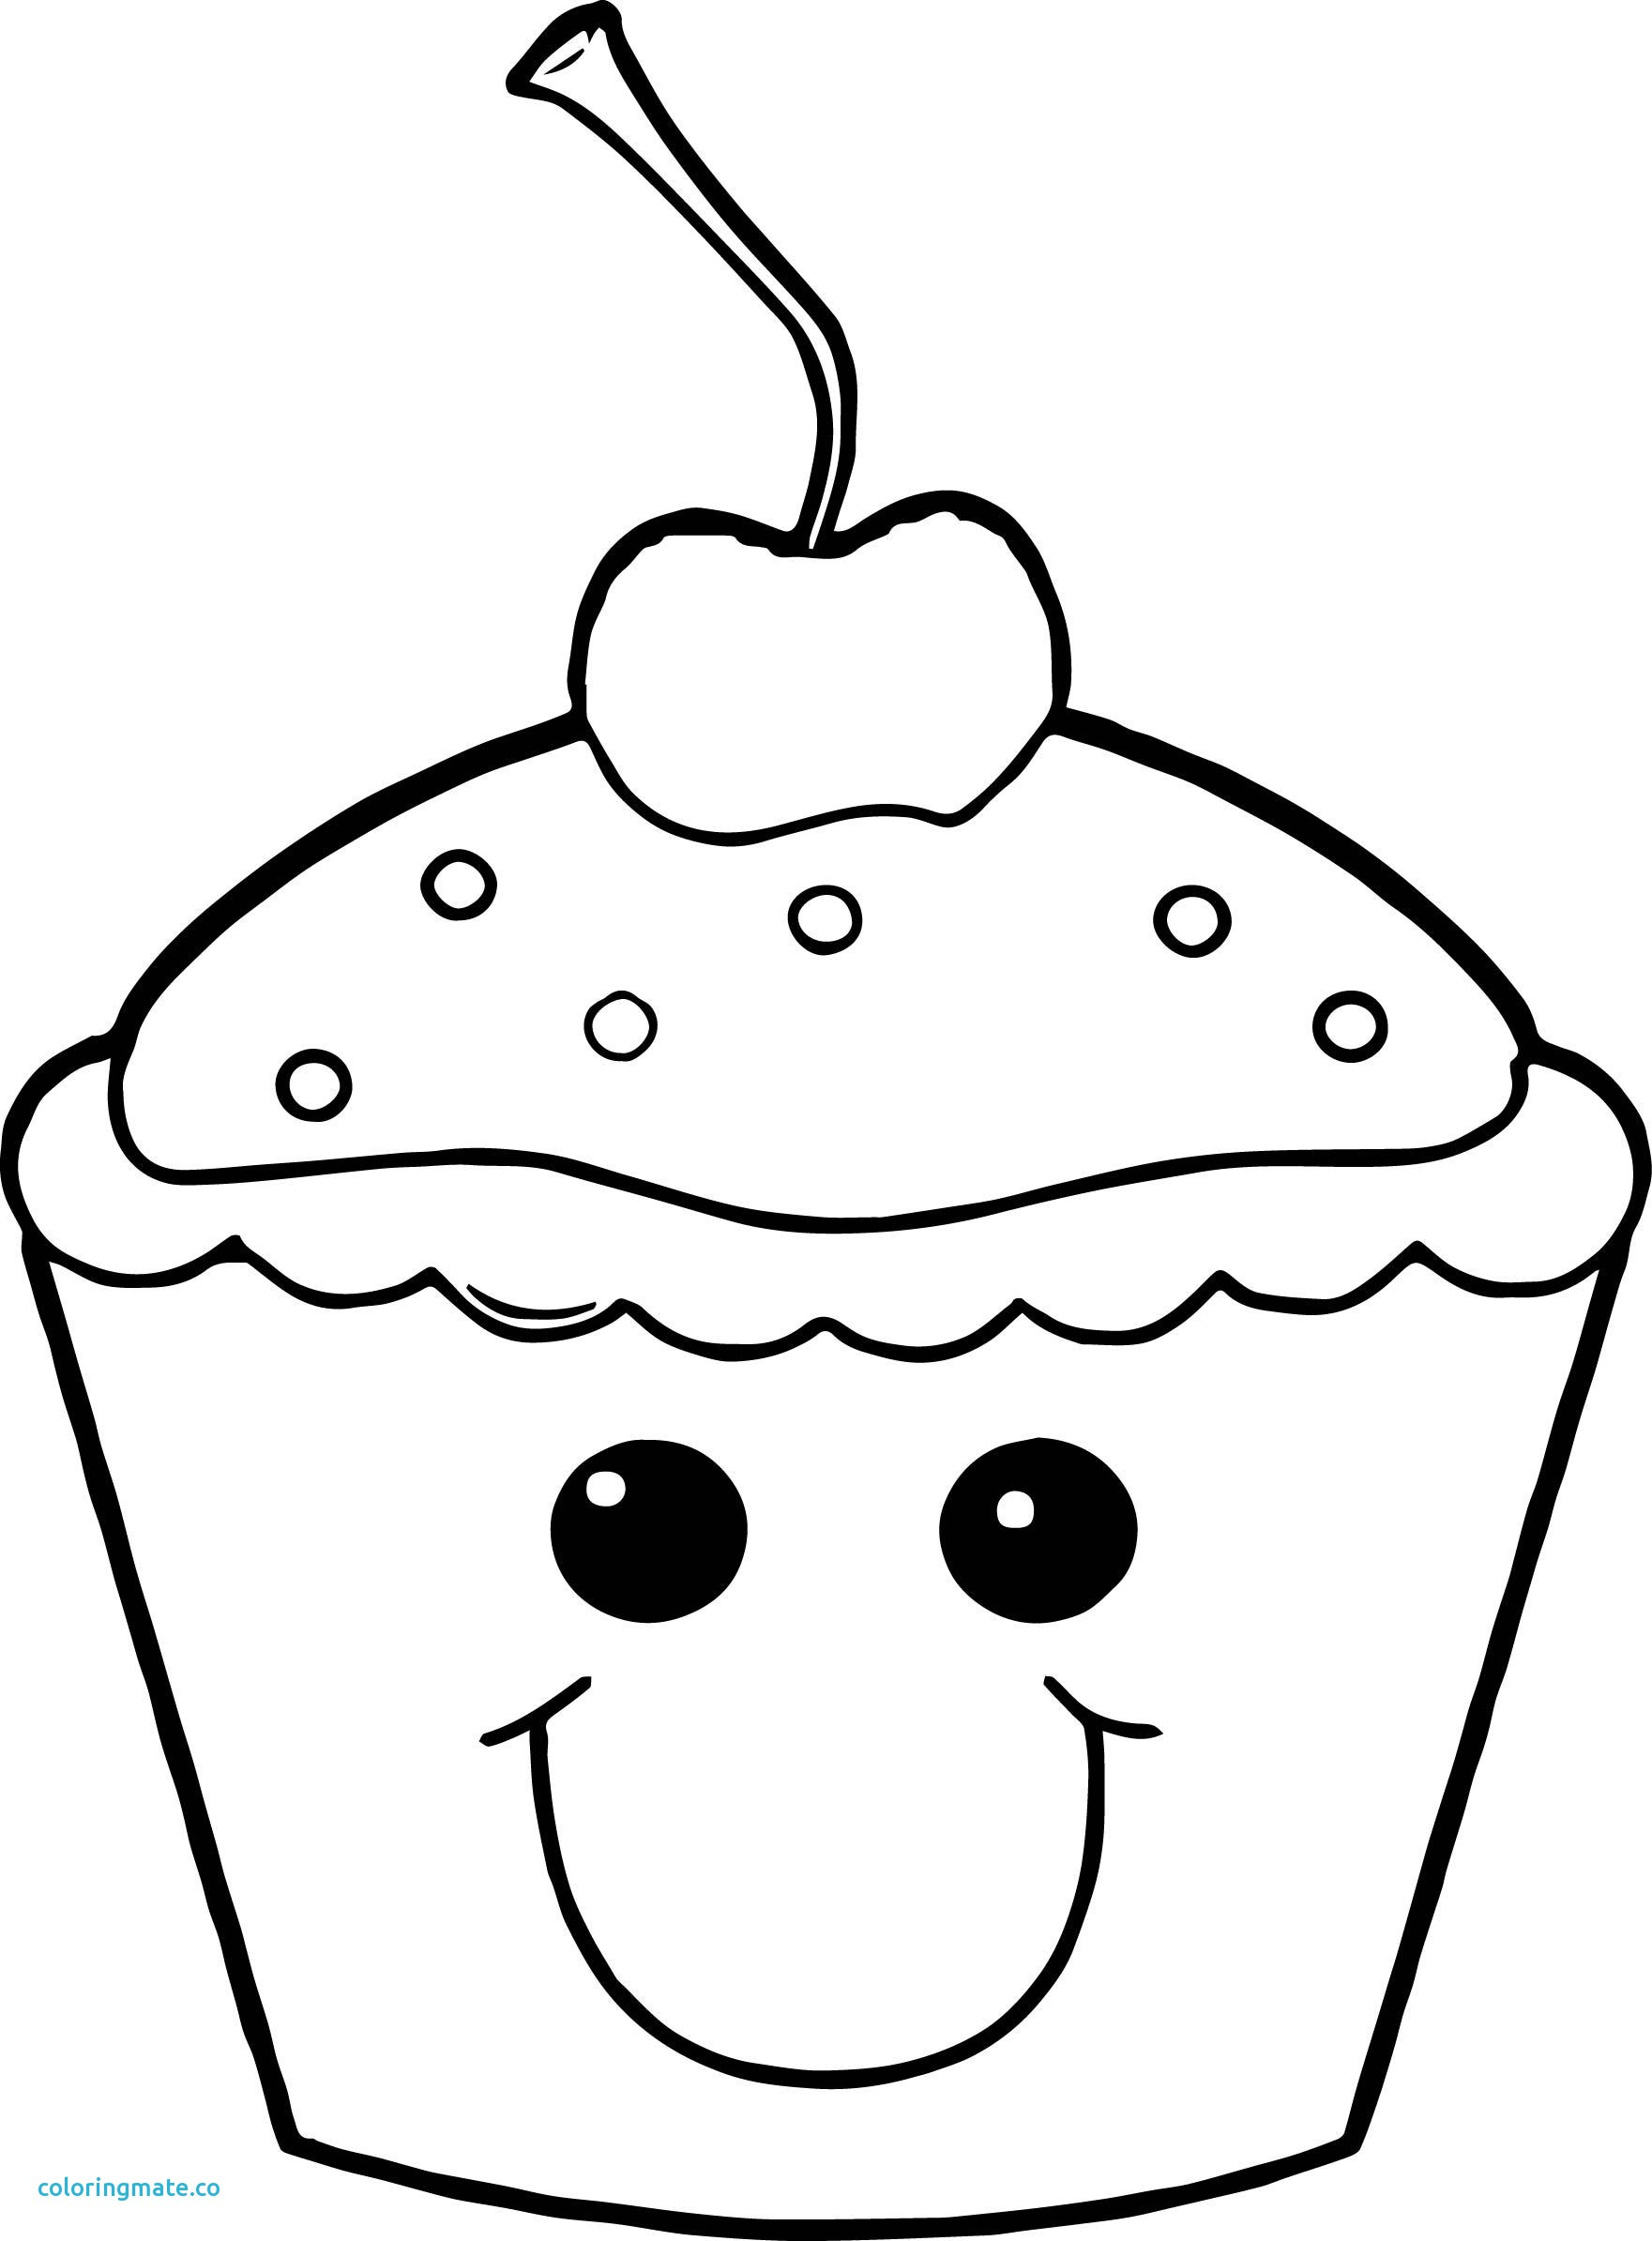 1761x2389 Cupcakes Coloring Pages Awesome 40 Cupcake Coloring Pages